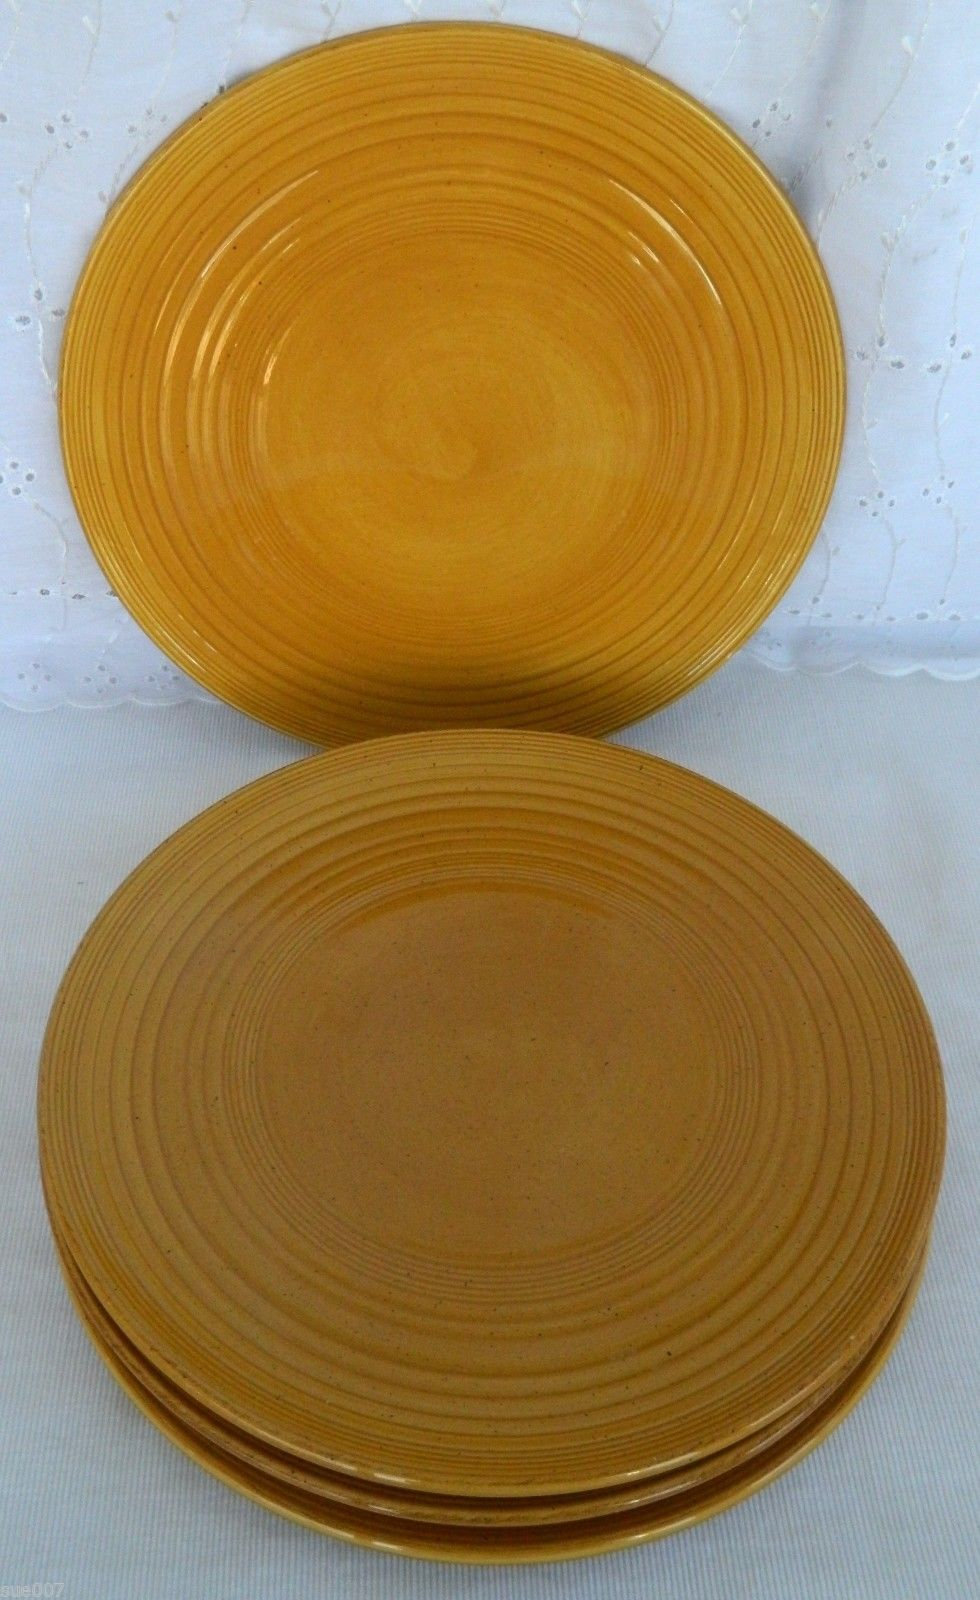 4 Tabletops Unlimited SWIRL Hand Painted PORTOFINO Yellow Mustard Dinner Plates & 4 Tabletops Unlimited SWIRL Hand Painted and 15 similar items